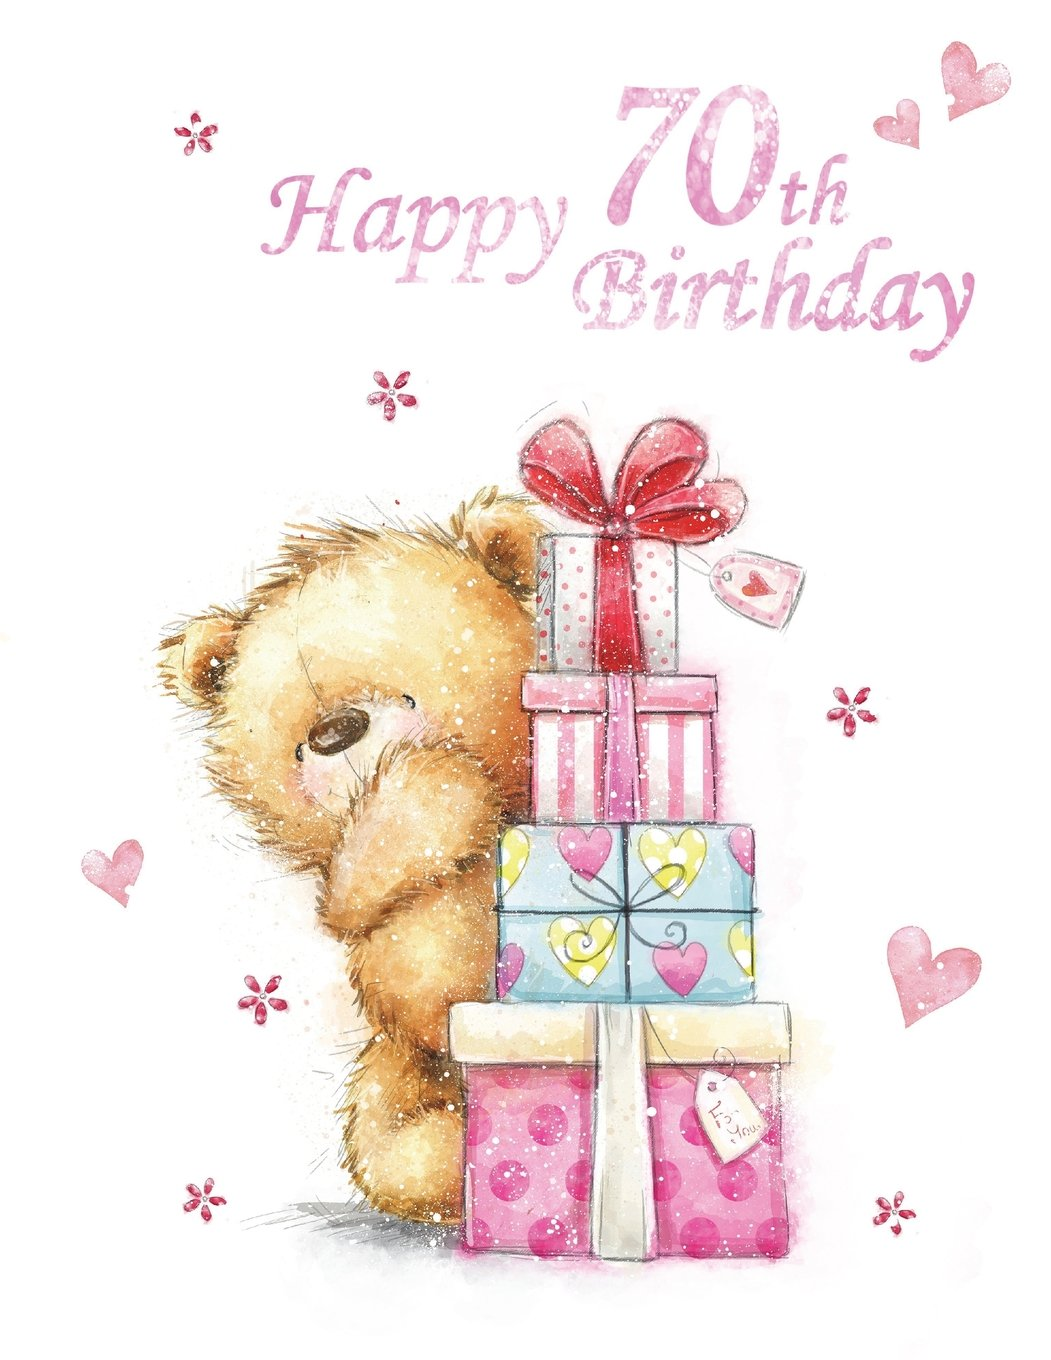 Happy 70th Birthday Notebook Journal Dairy 185 Lined Pages Cute Teddy Bear Themed Gifts For 70 Year Old Men Or Women Brother Sister